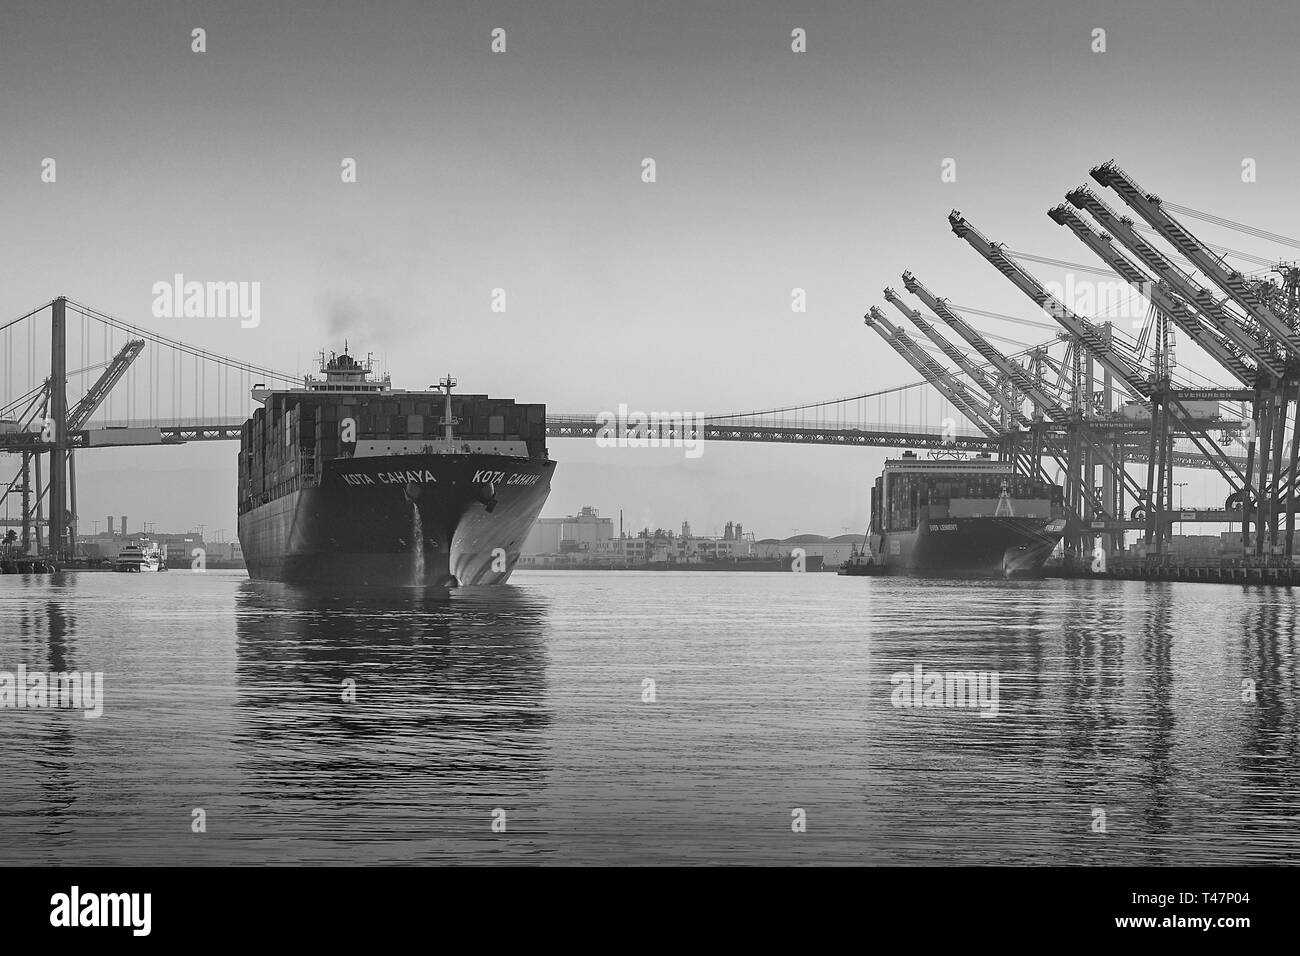 Black & White Photo Of Container Ship, KOTA CAHAYA, Pumping Ballast Water Overboard (De-Ballasting), As She Departs The Port Of Los Angeles At Dawn. - Stock Image